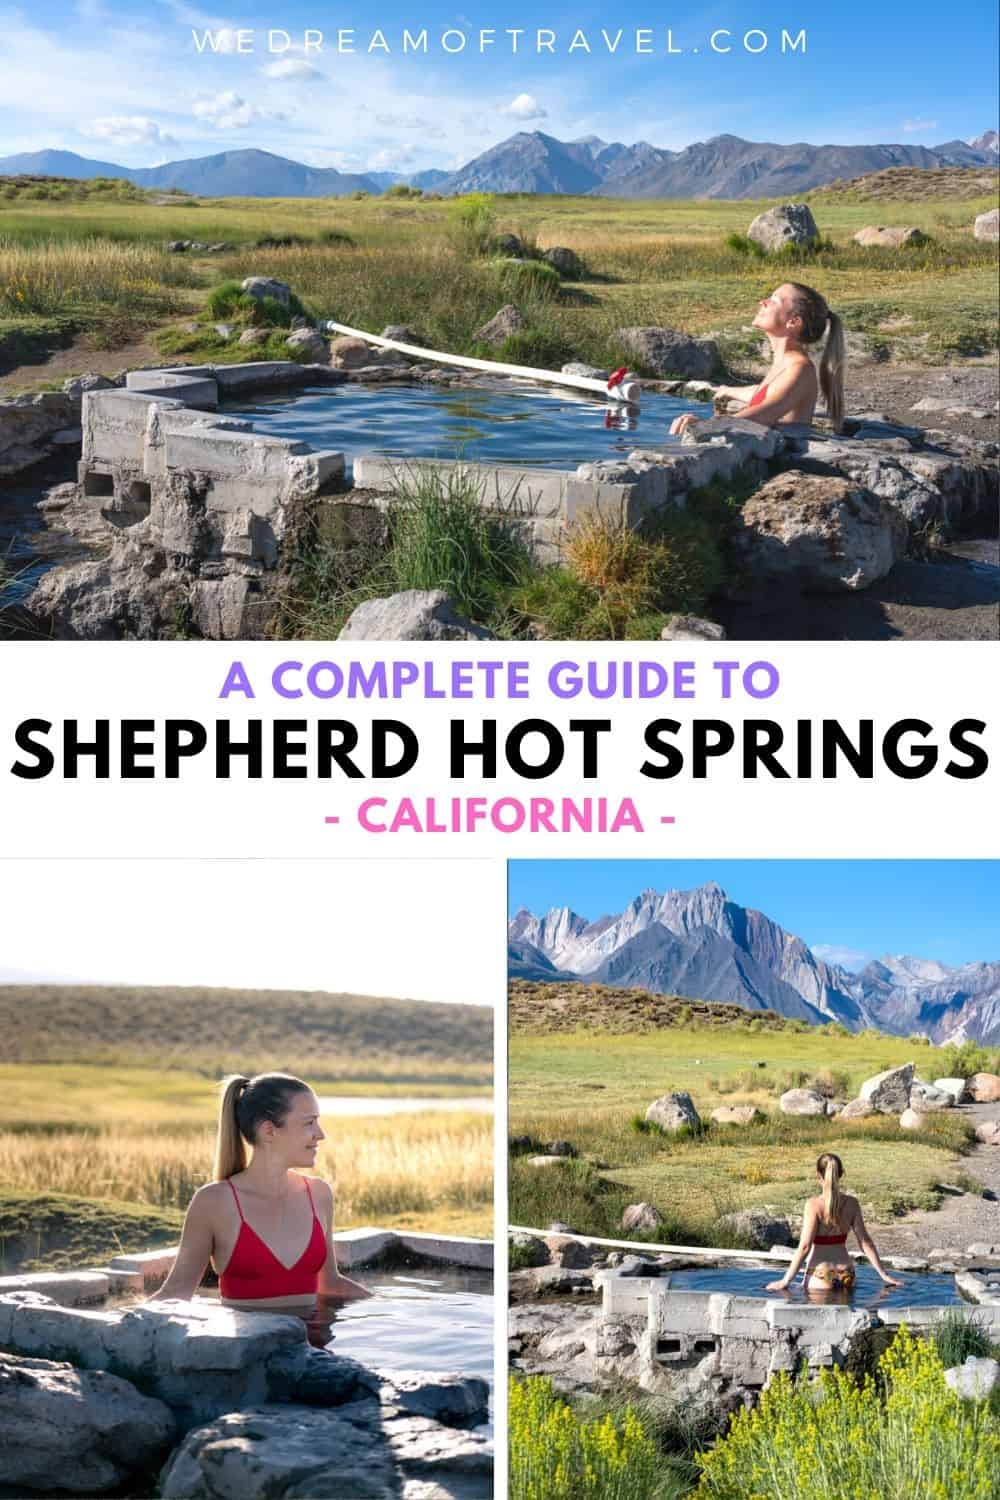 Delight in this geothermal wonder and soak away aching muscles.  Find out everything you need to know about visiting Shepherd Hot Springs in Mammoth Lakes, California in this photography and travel guide!